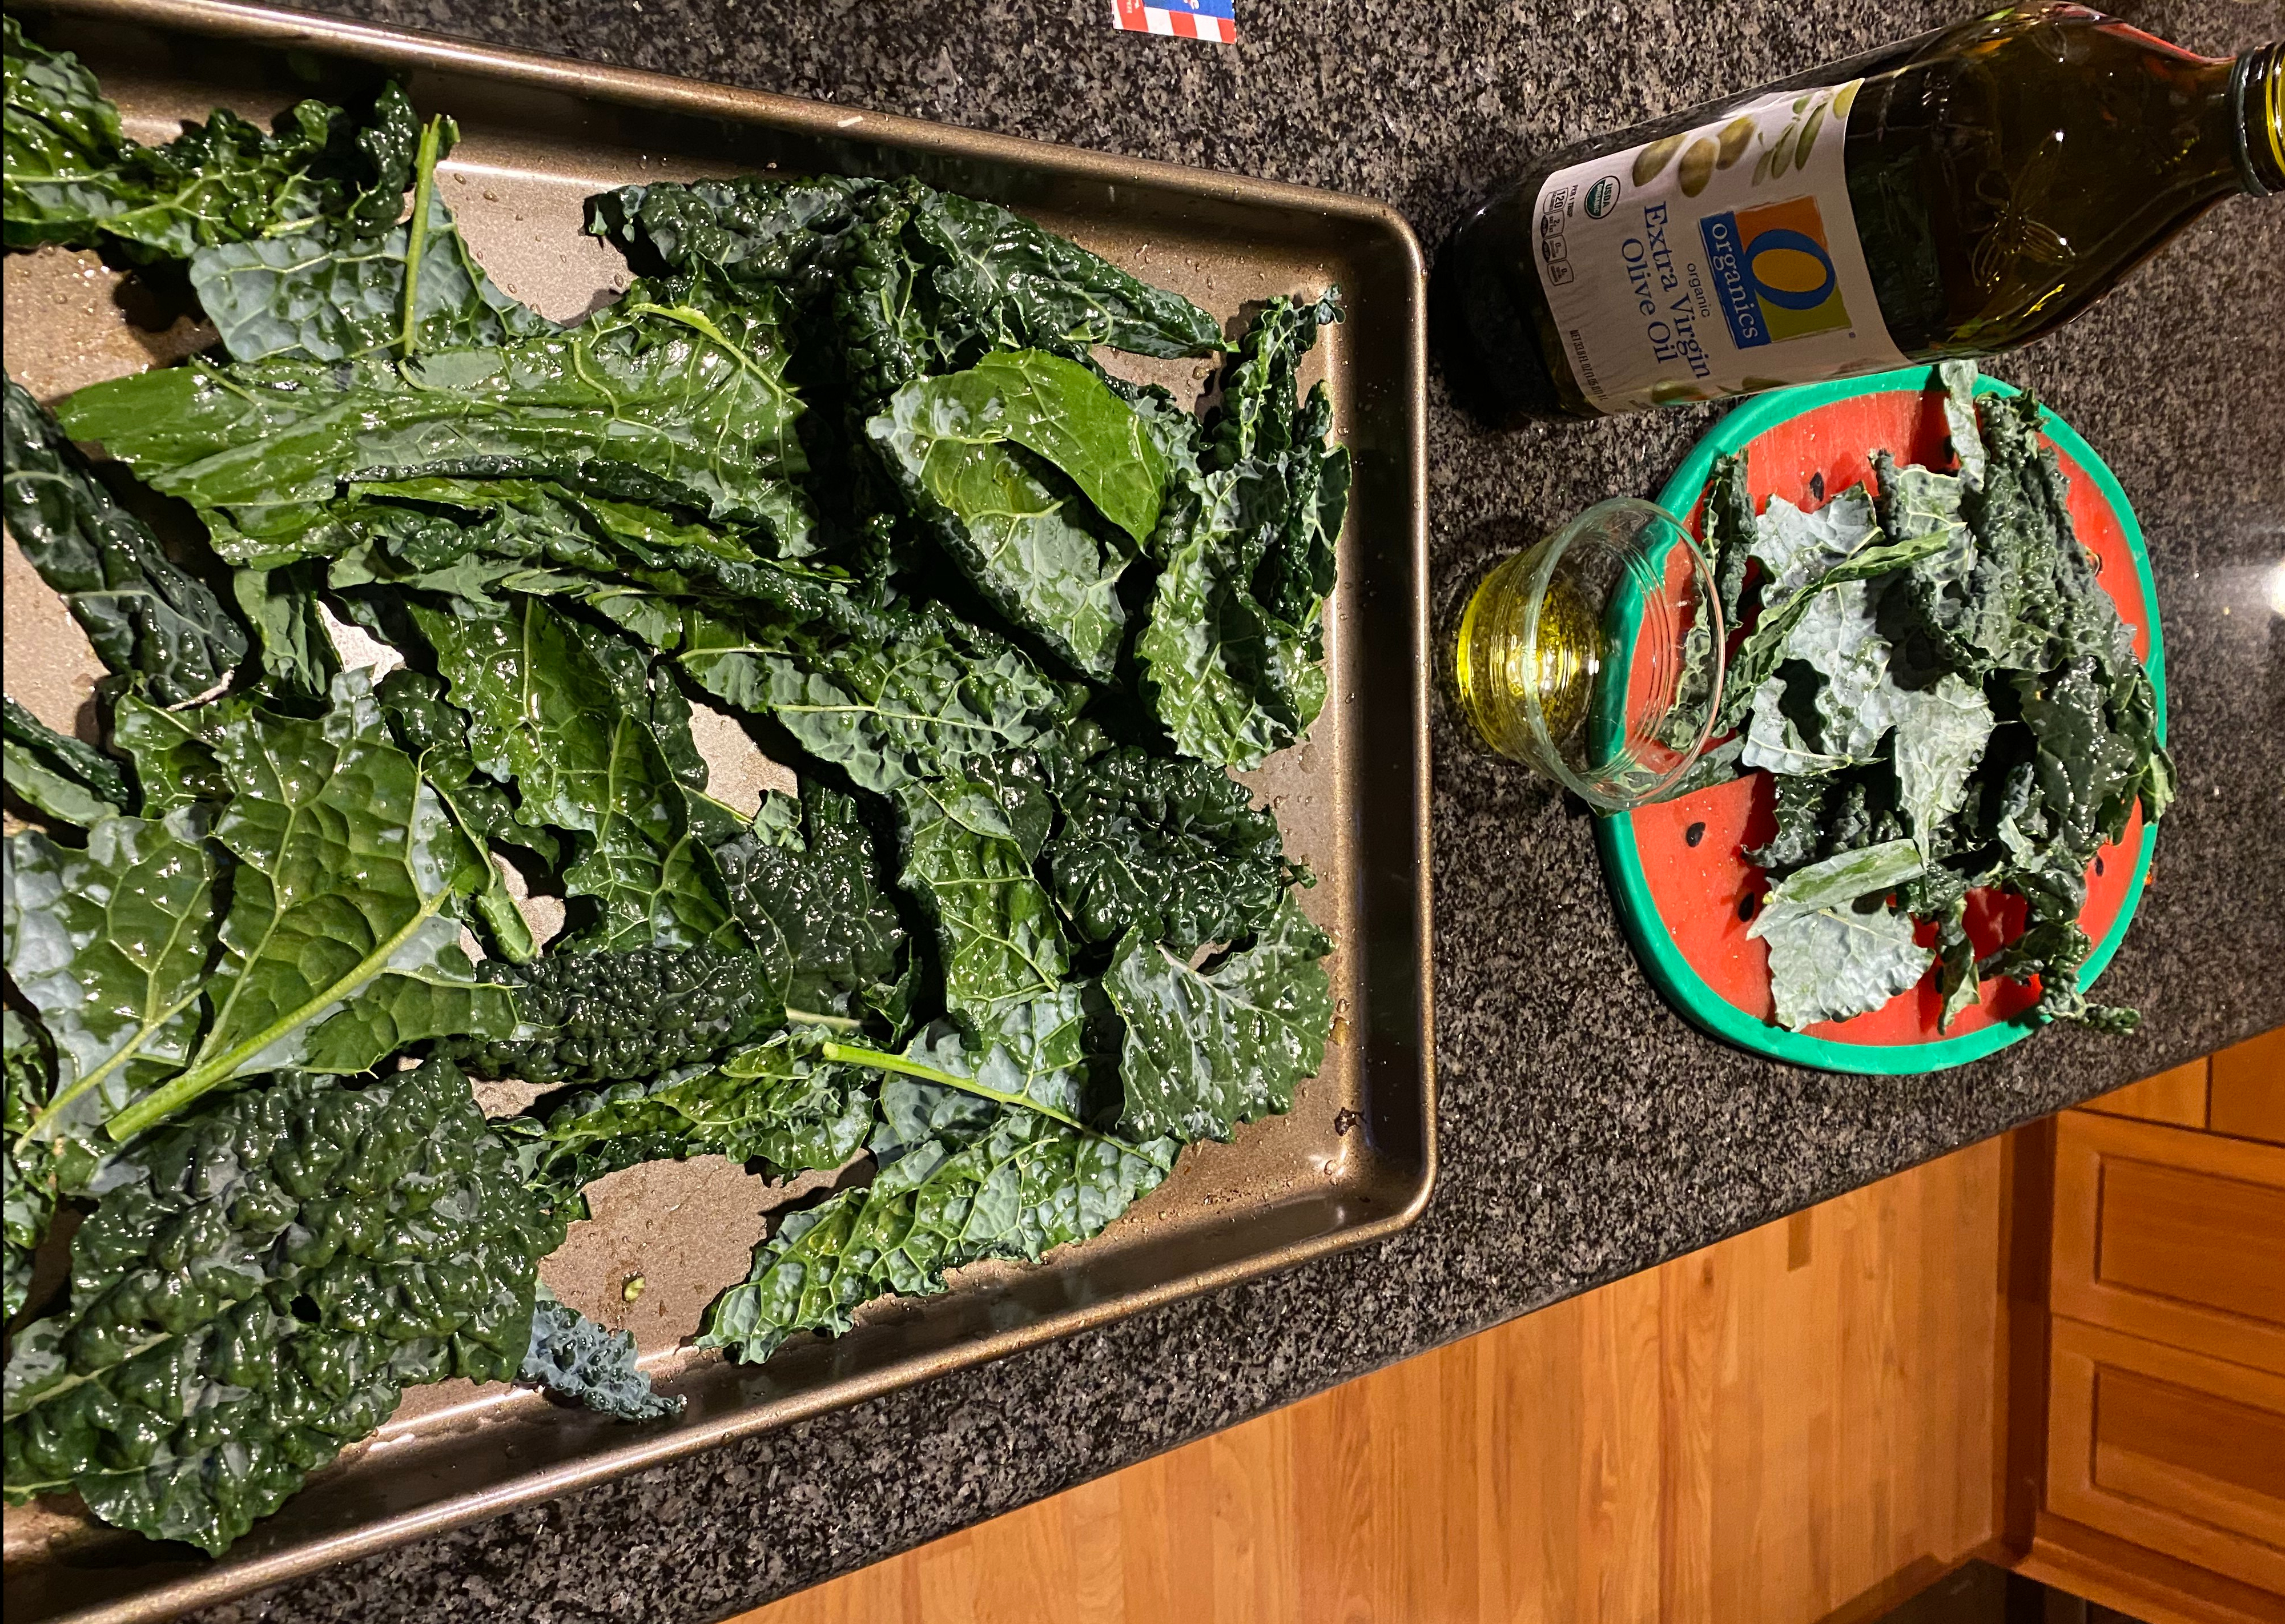 Kale chips fresh out of the oven.